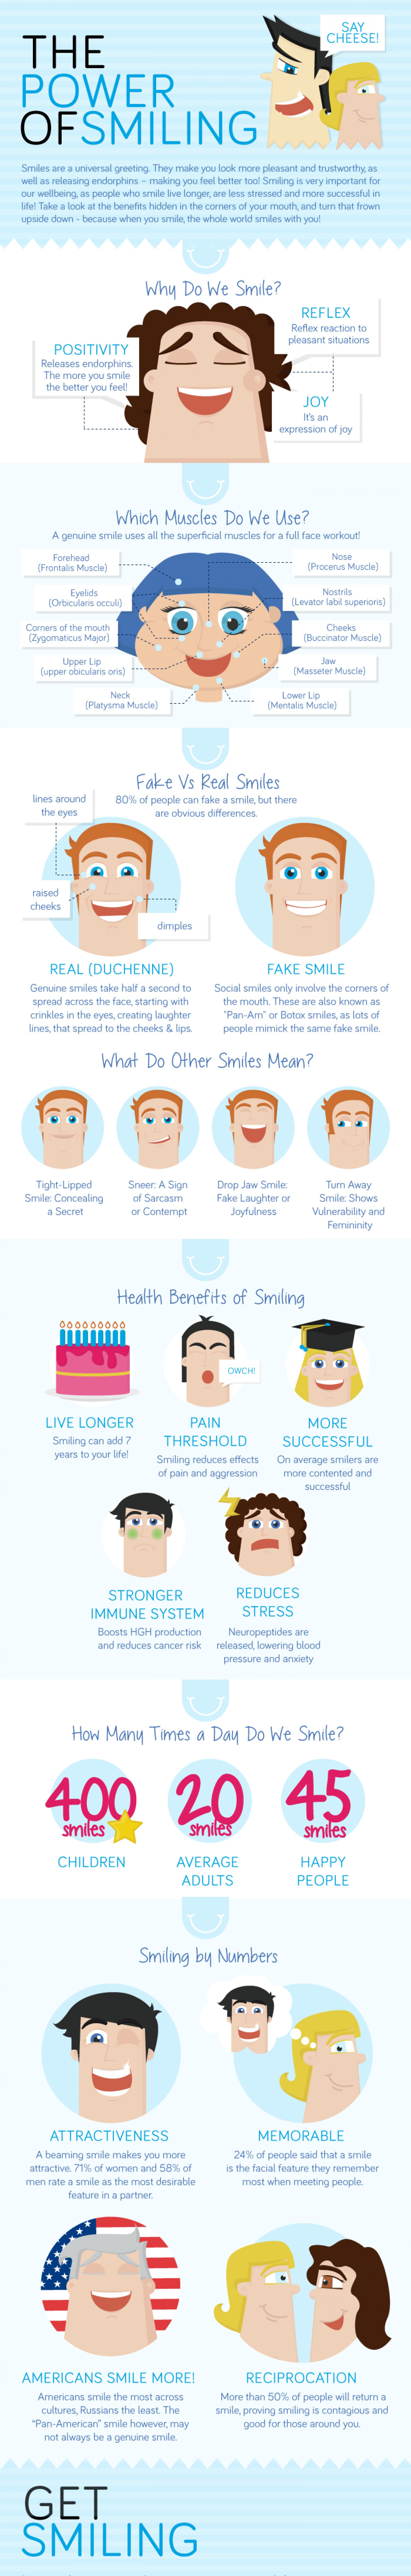 The Power of Smiling - Turner Dental Care Aliso Viejo